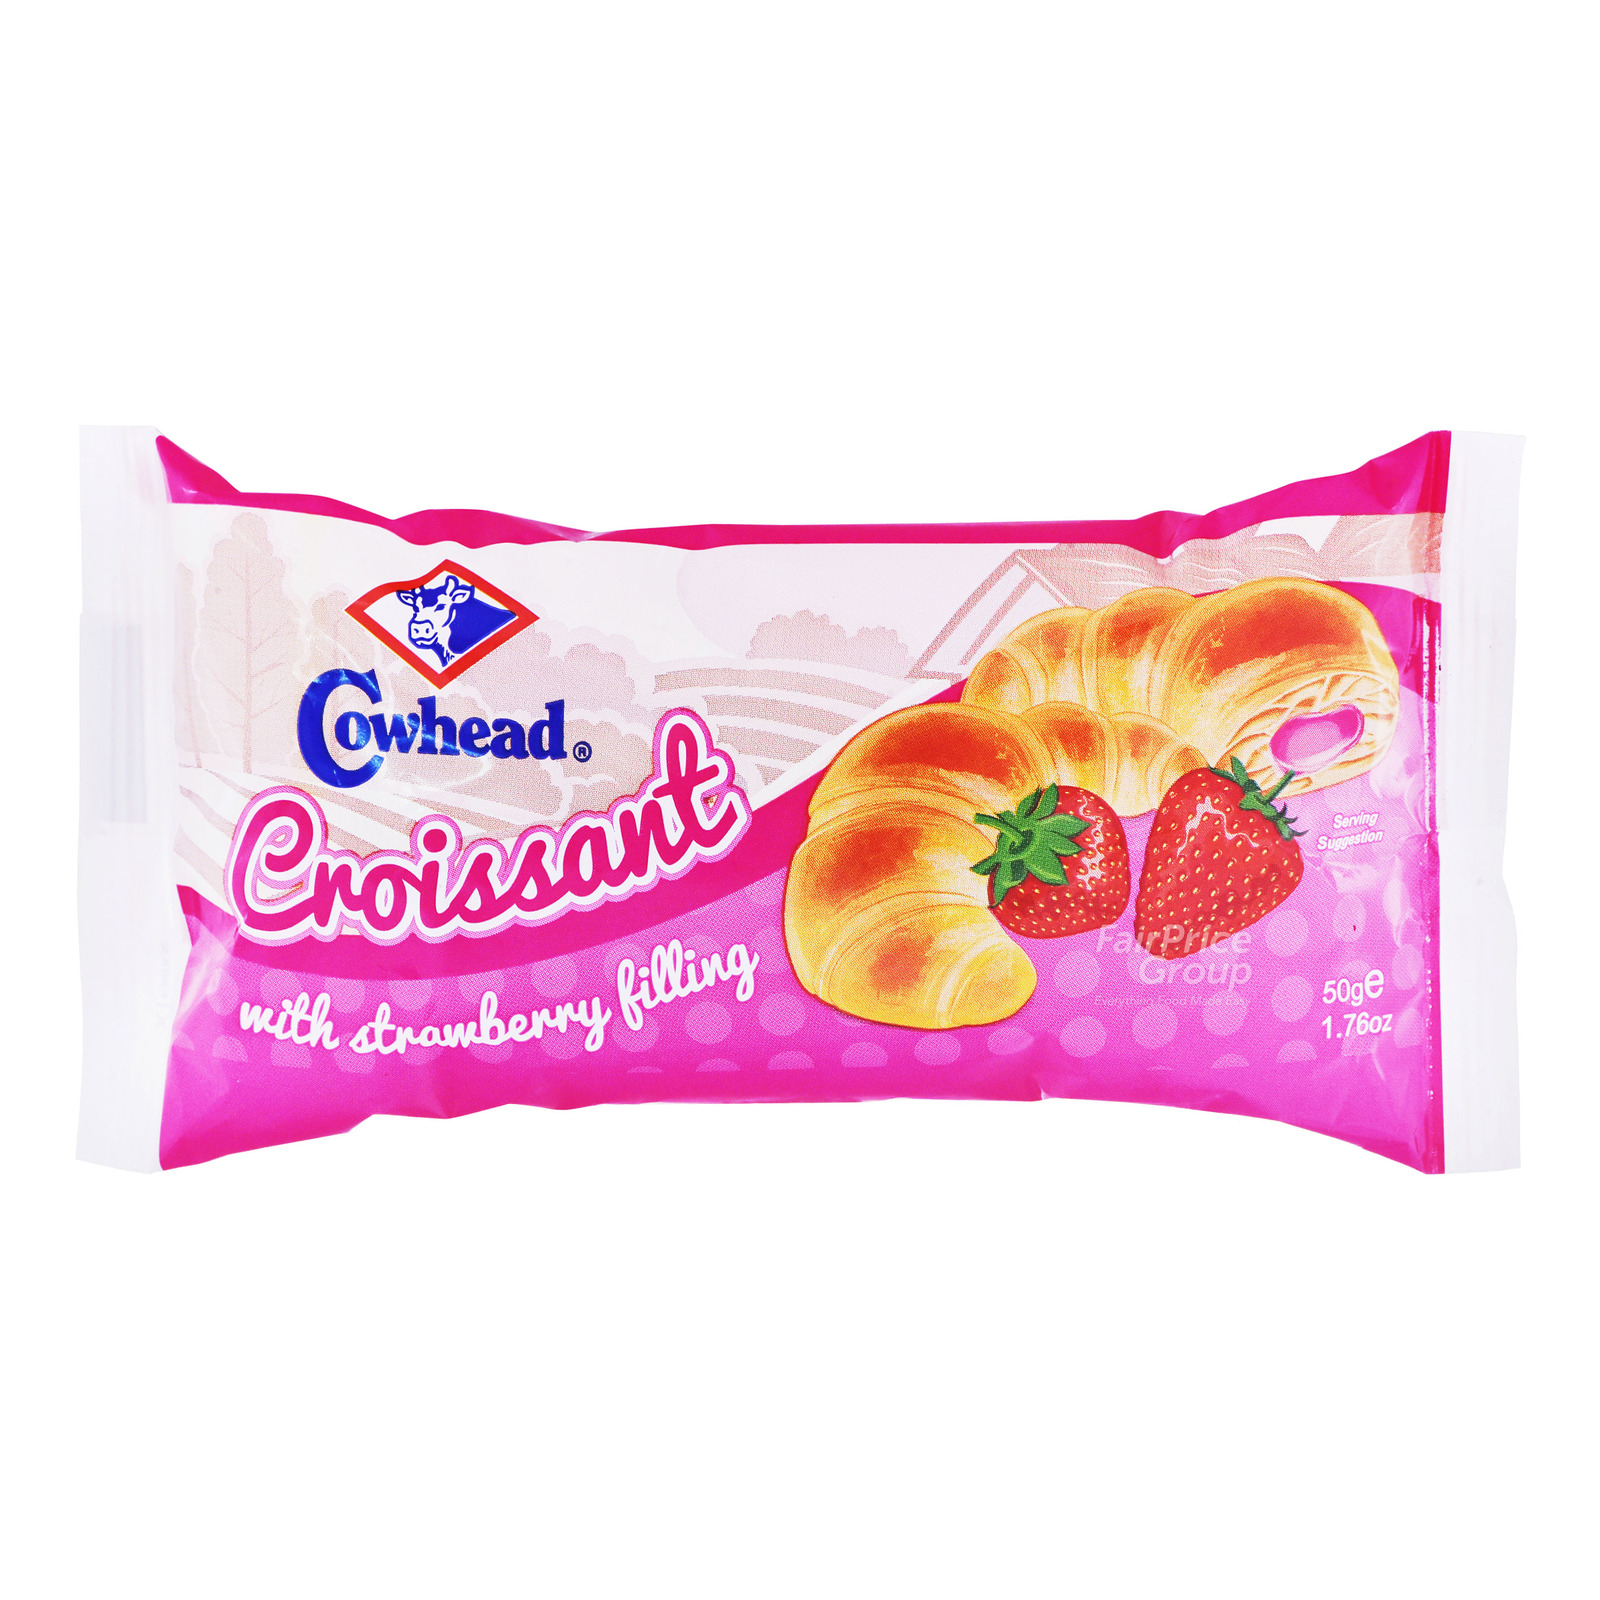 Cowhead Crossiant with Filling - Strawberry